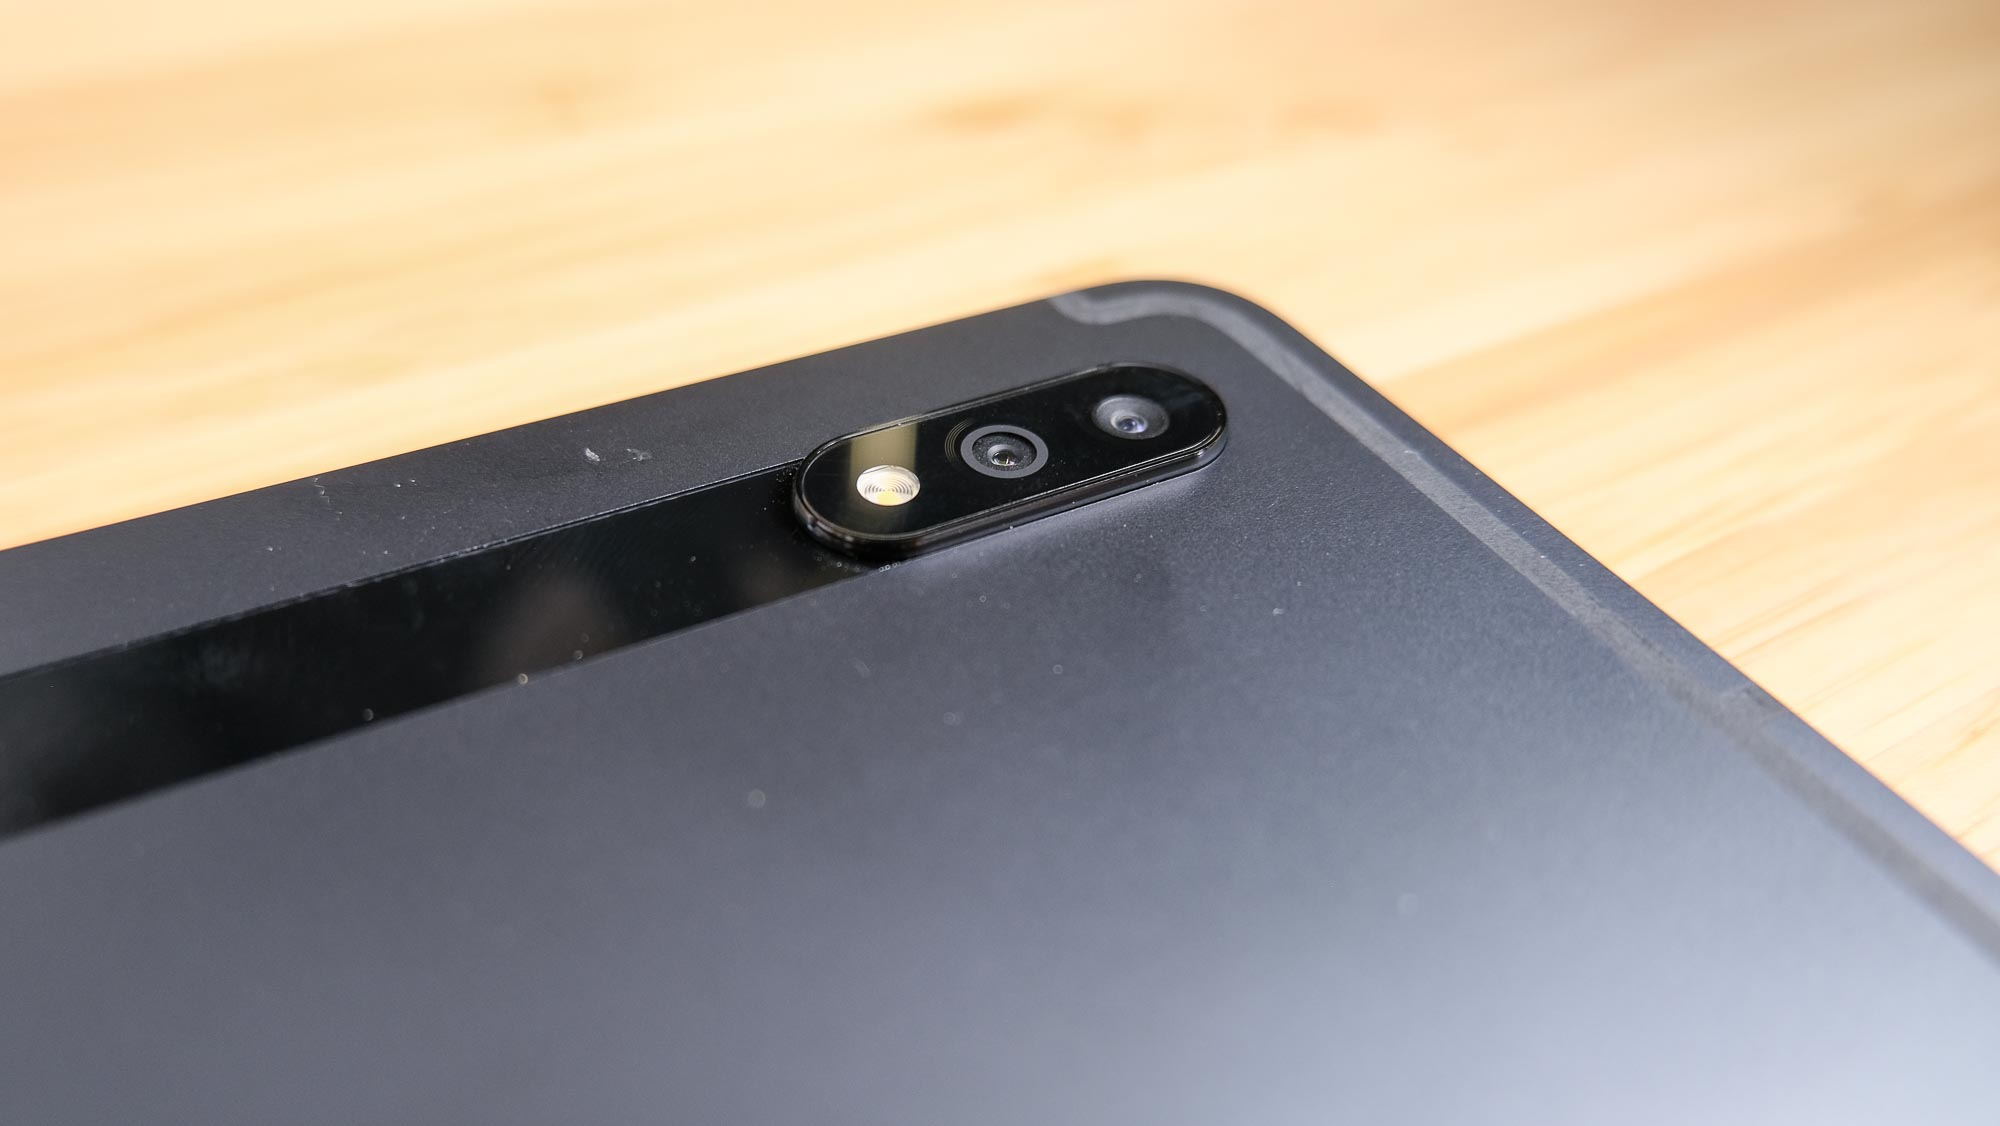 Samsung Galaxy Tab S7 and S7 Plus review camera bump